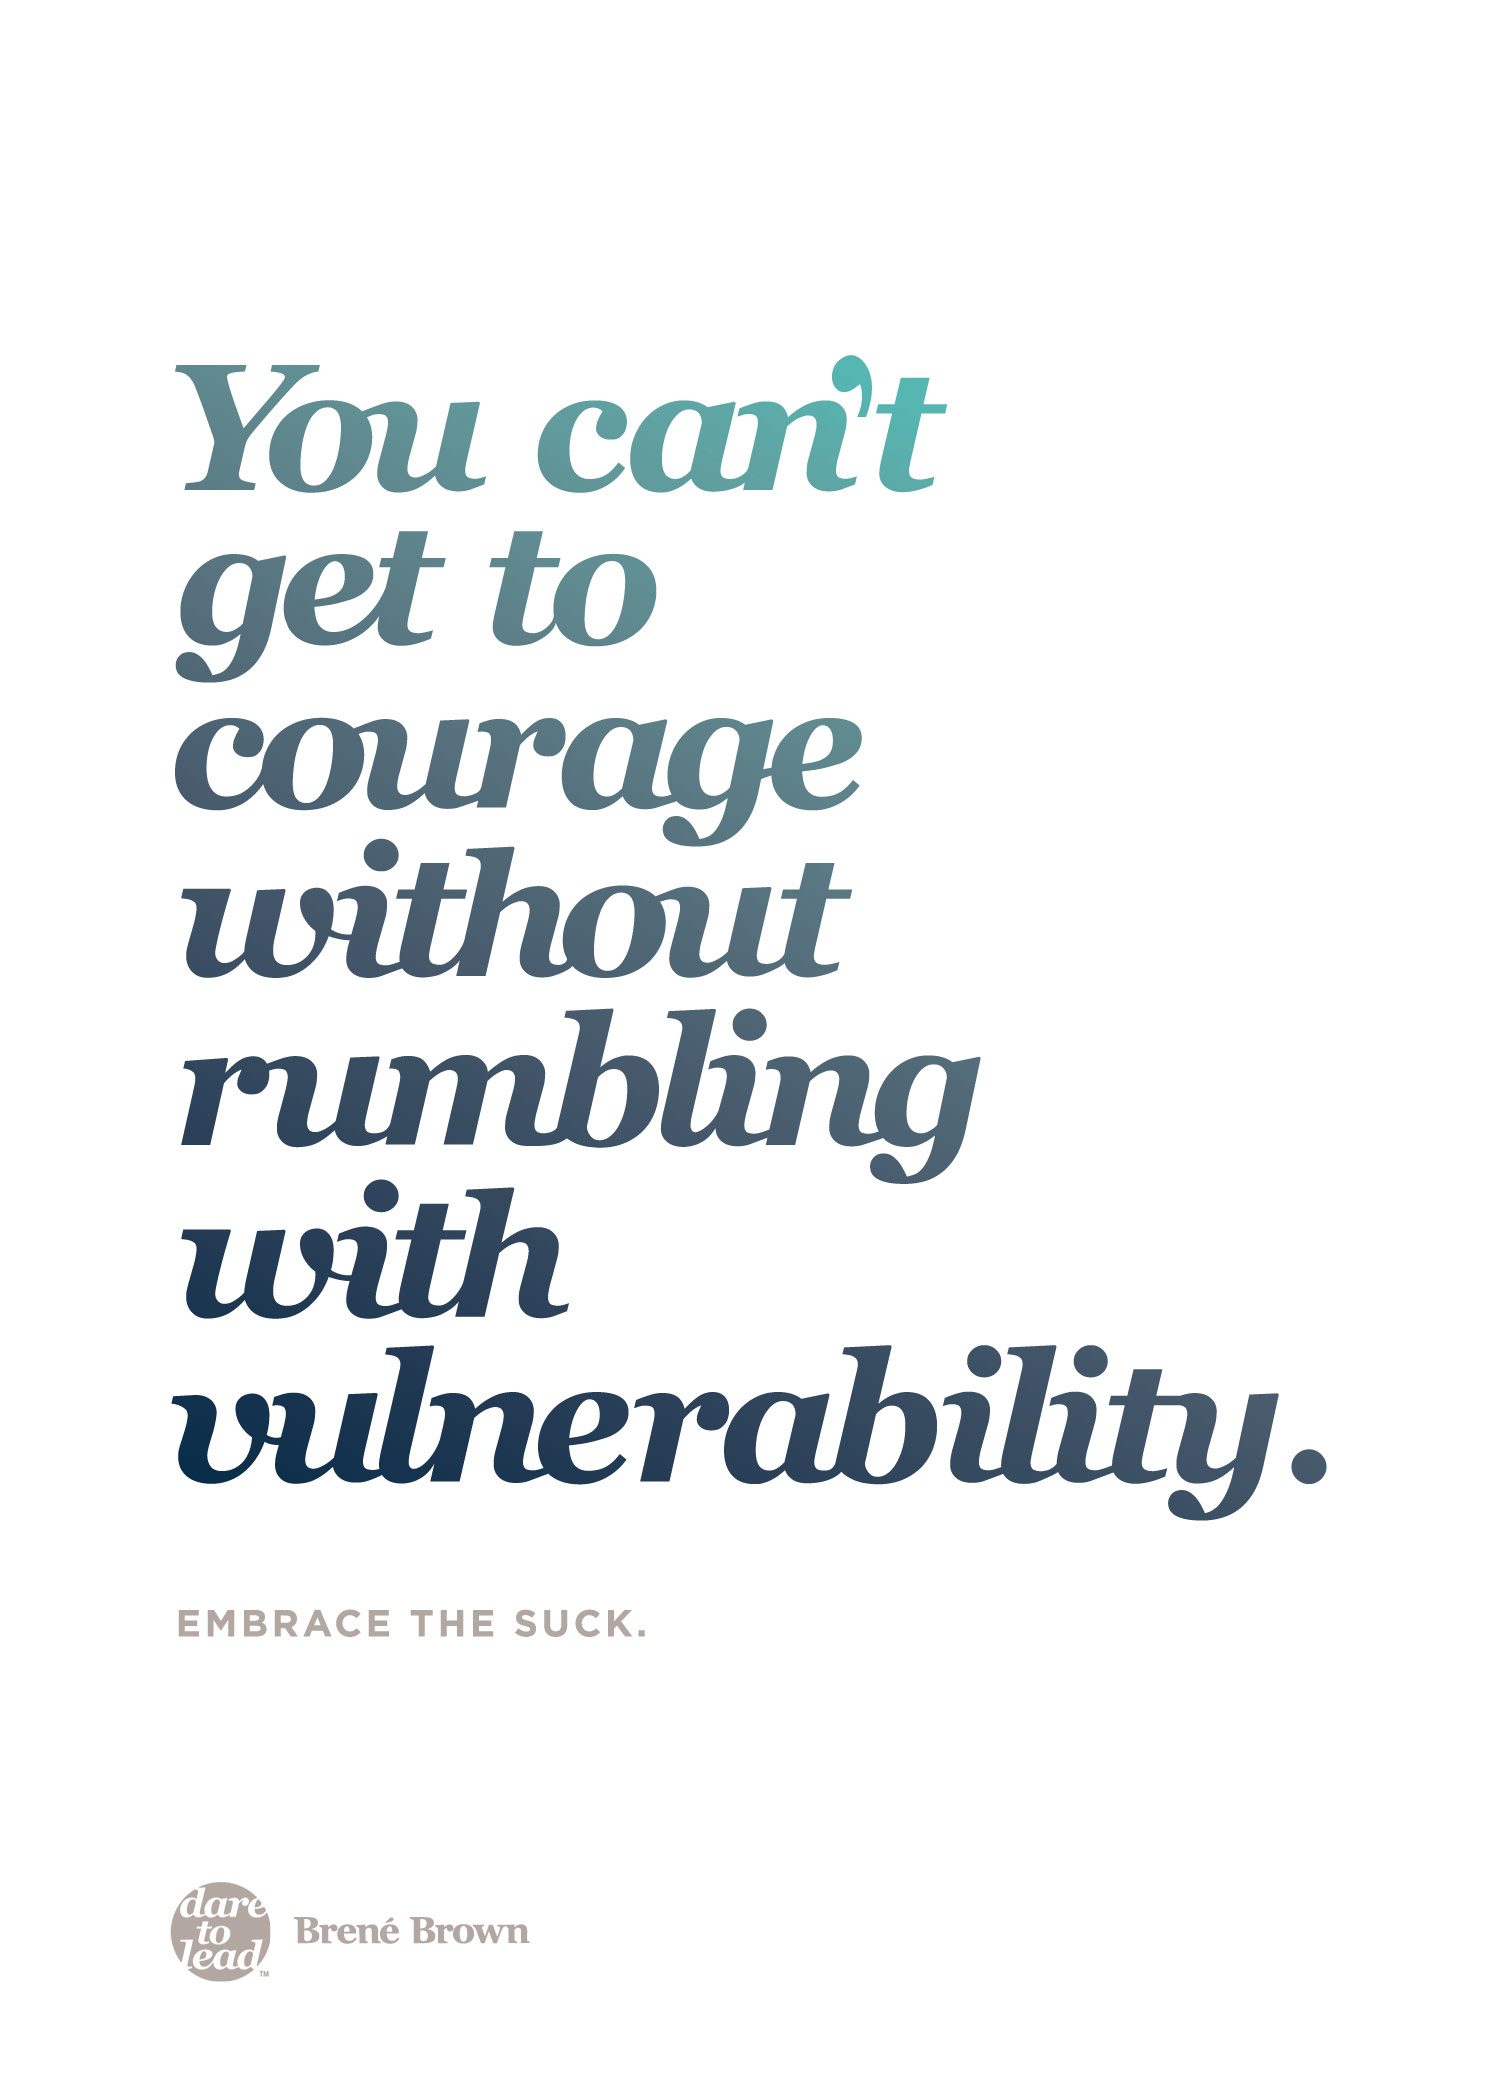 """You can't get to courage without rumbling with vulnerability. Embrace the suck."" - Brené Brown"